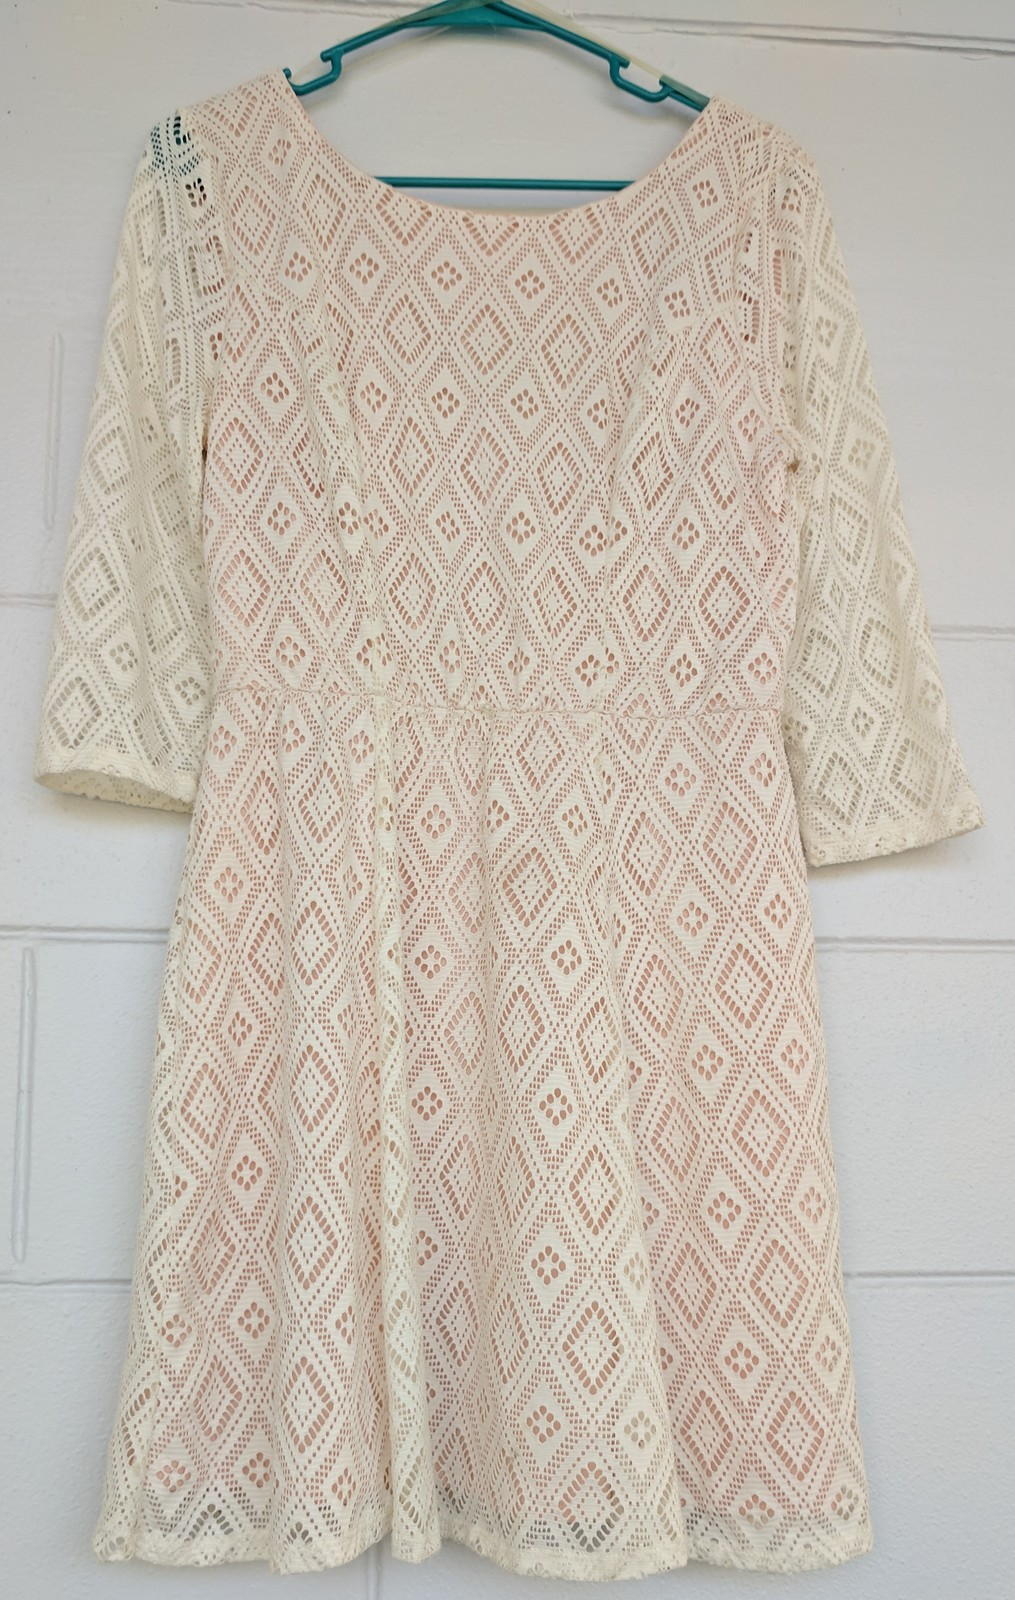 920ebd31f57ba2 Pretty Lace Dress - Lily Rose brand Size L and 16 similar items. Img  20170927 114741 1